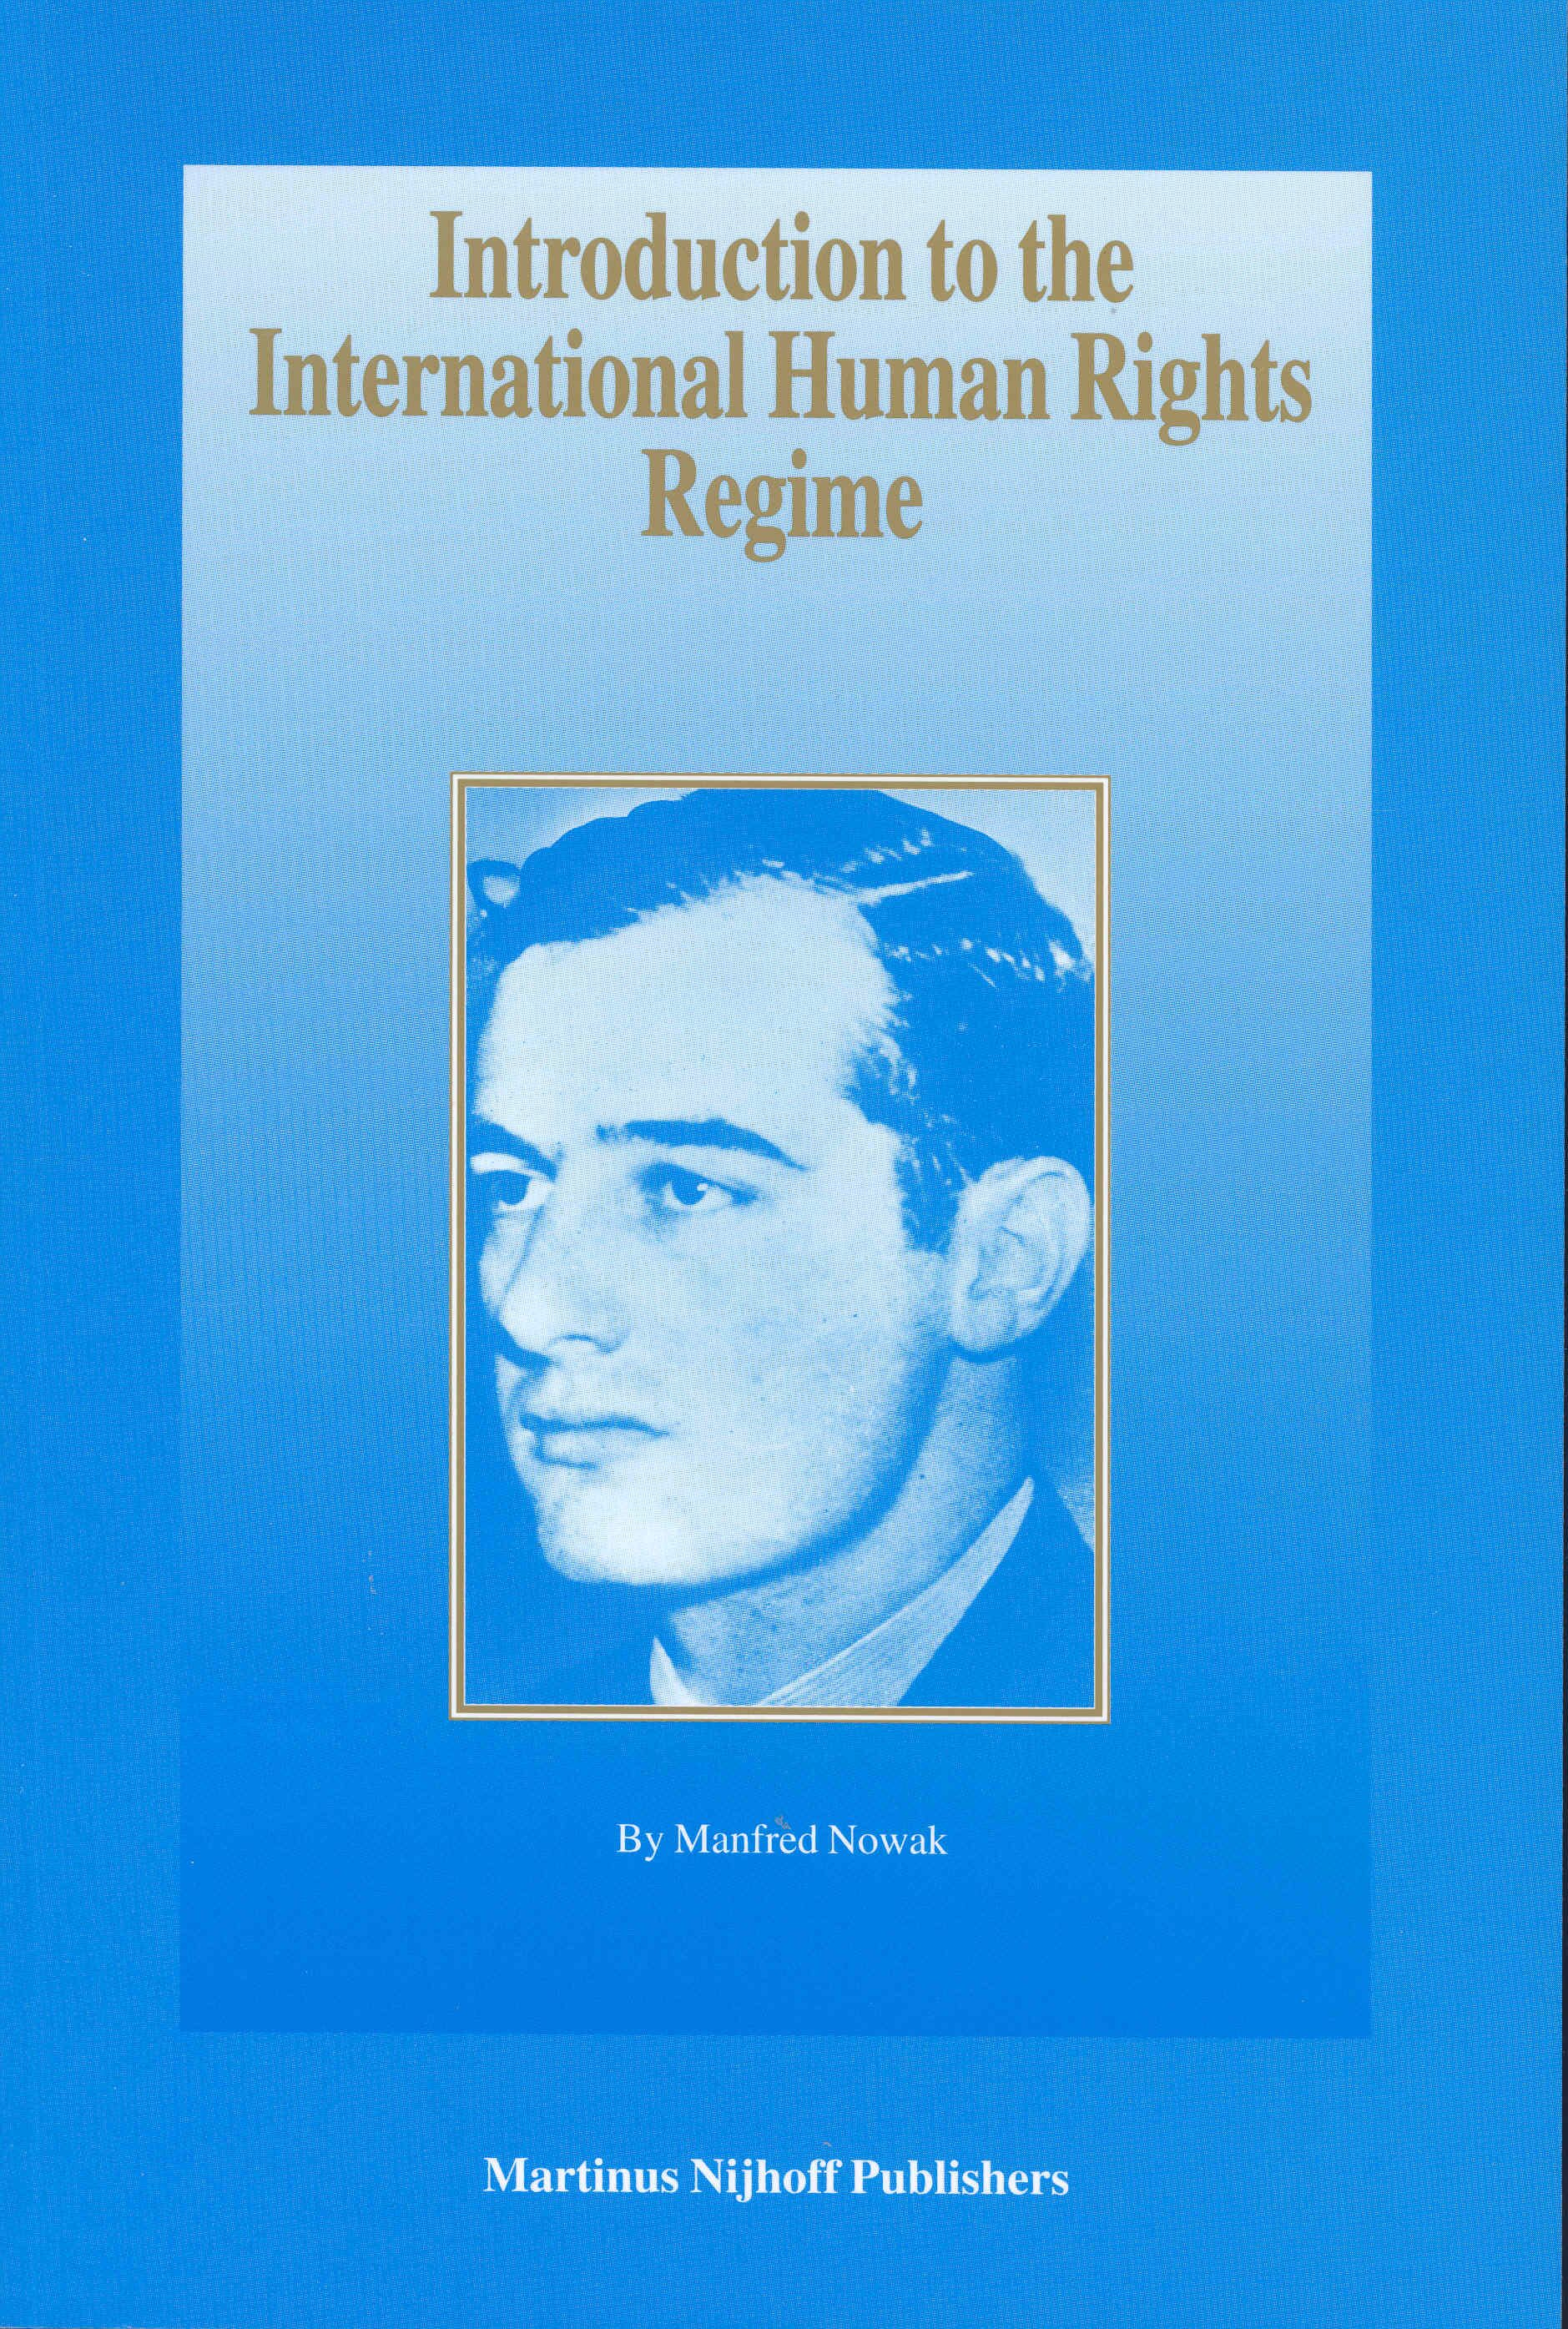 Introduction to the International Human Rights Regime   Brill